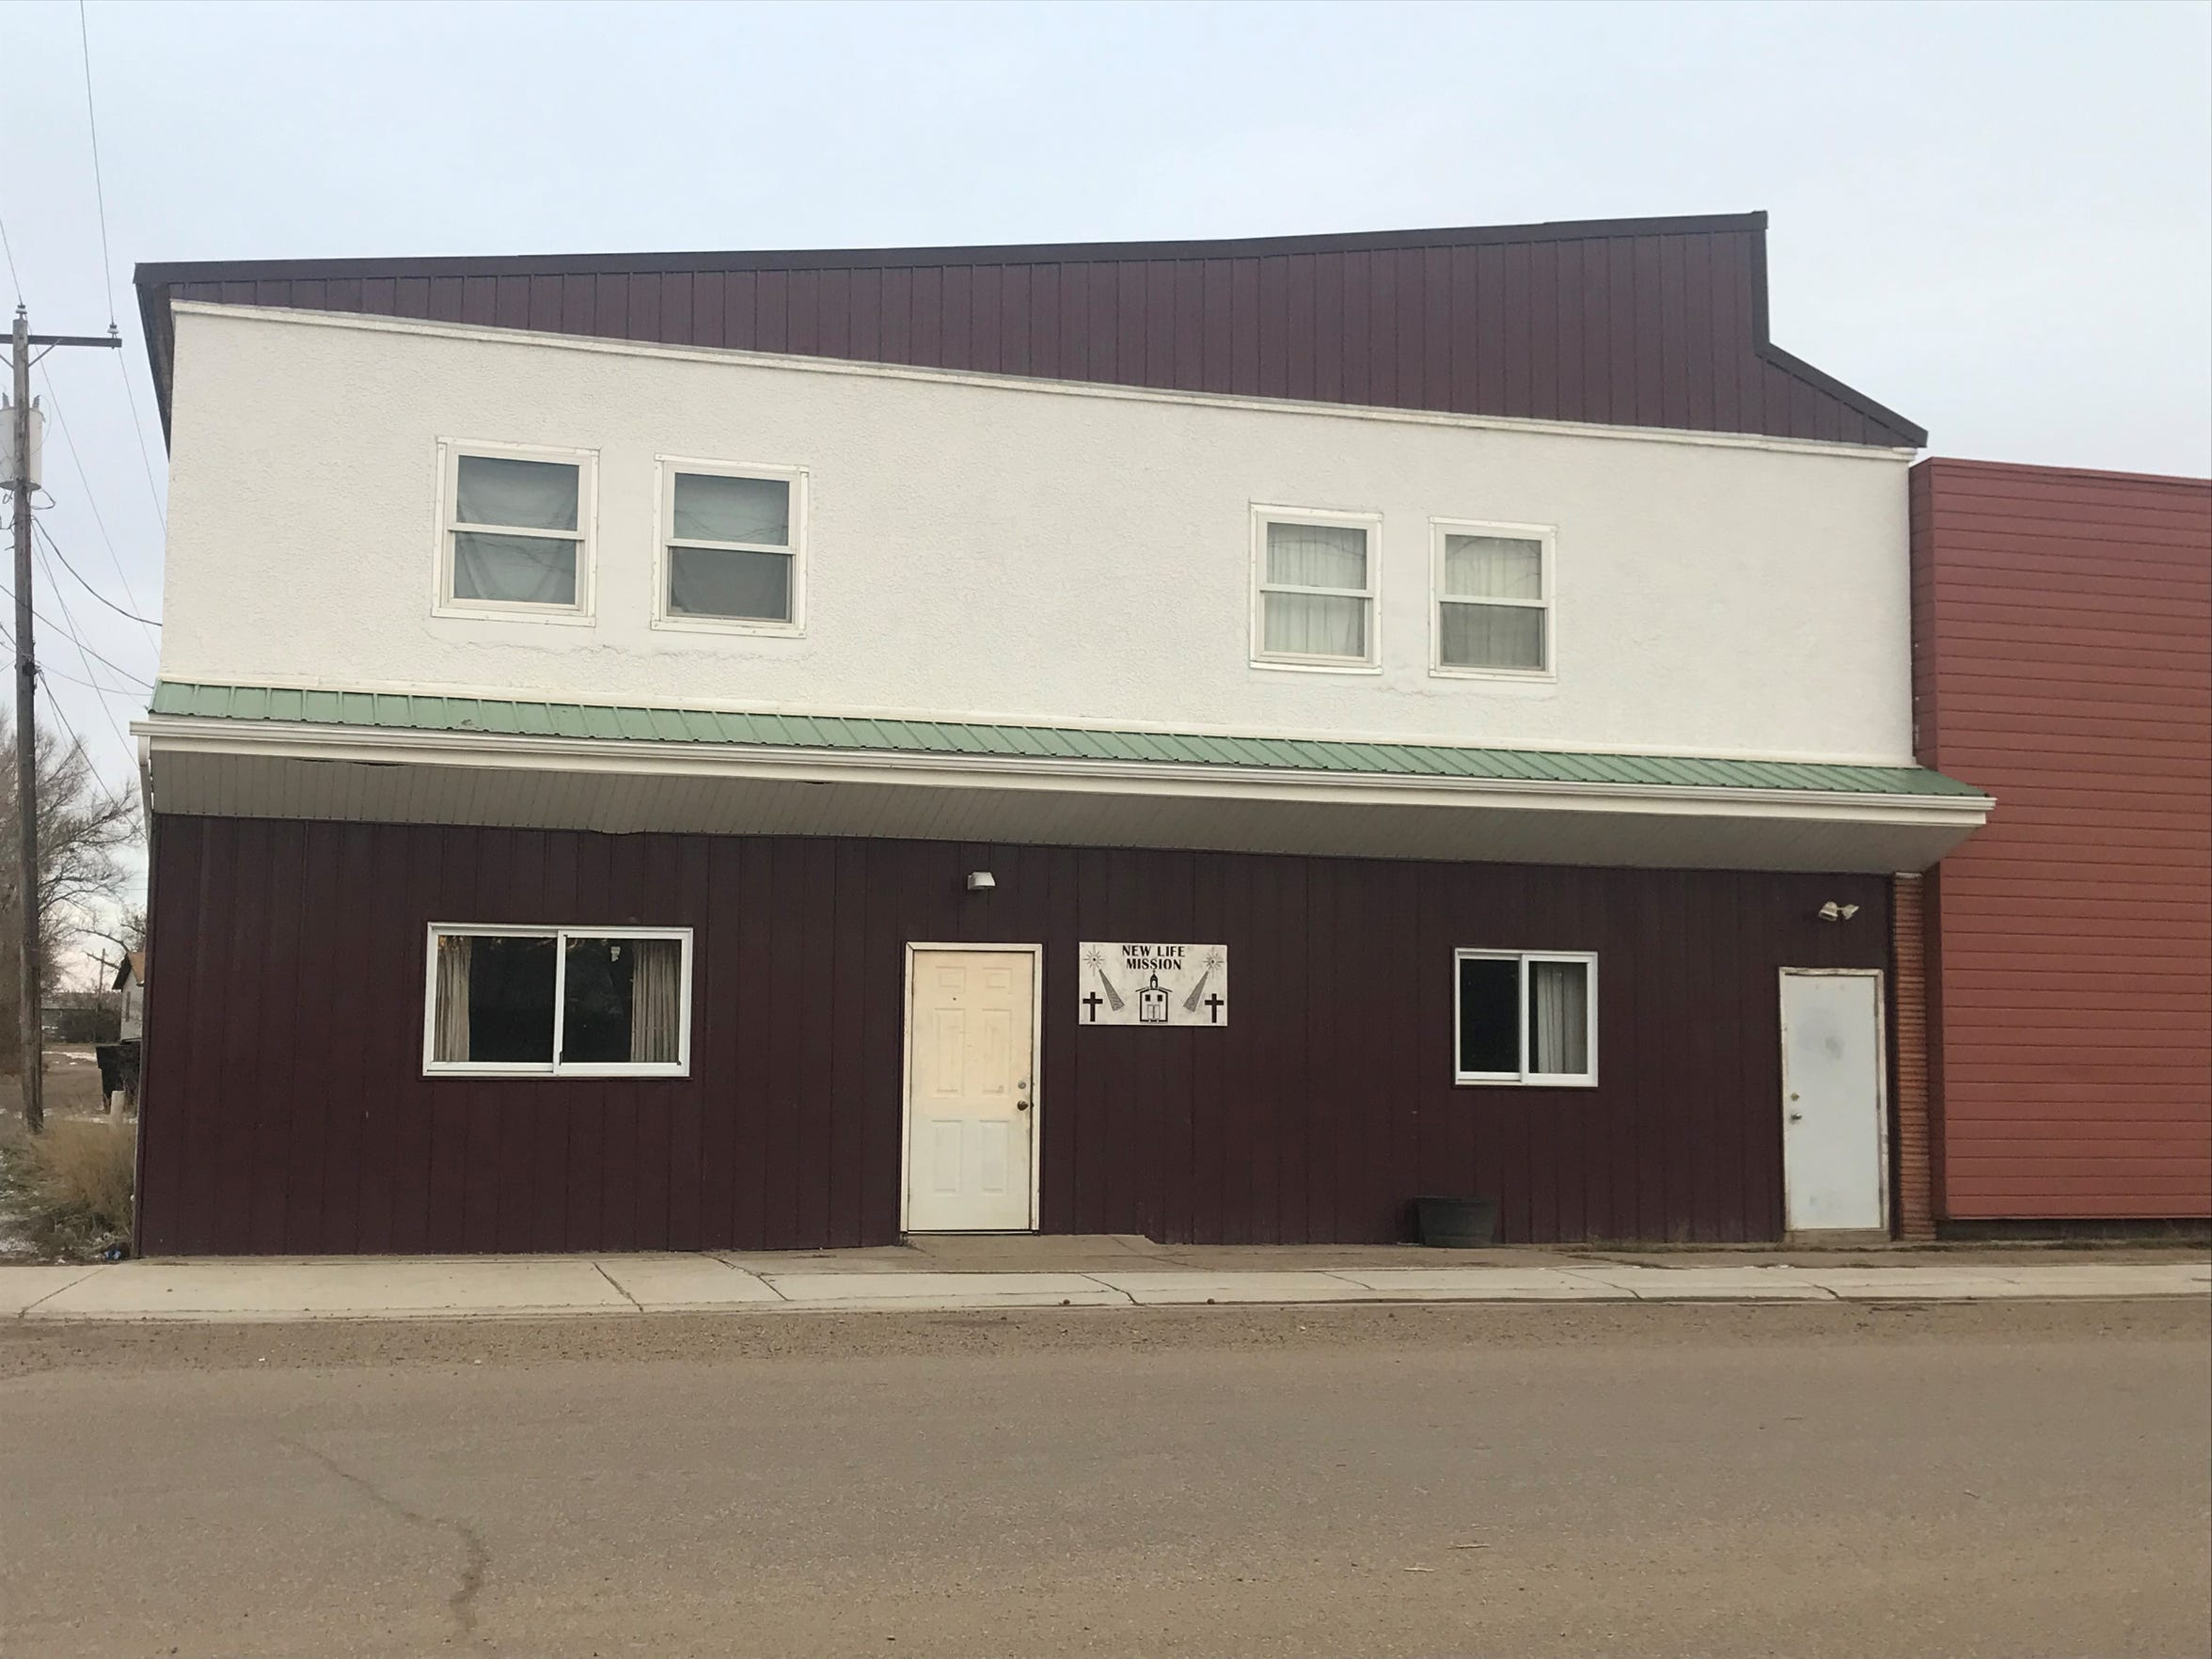 The New Life Mission, a homeless shelter in Poplar, closed for meth contamination.